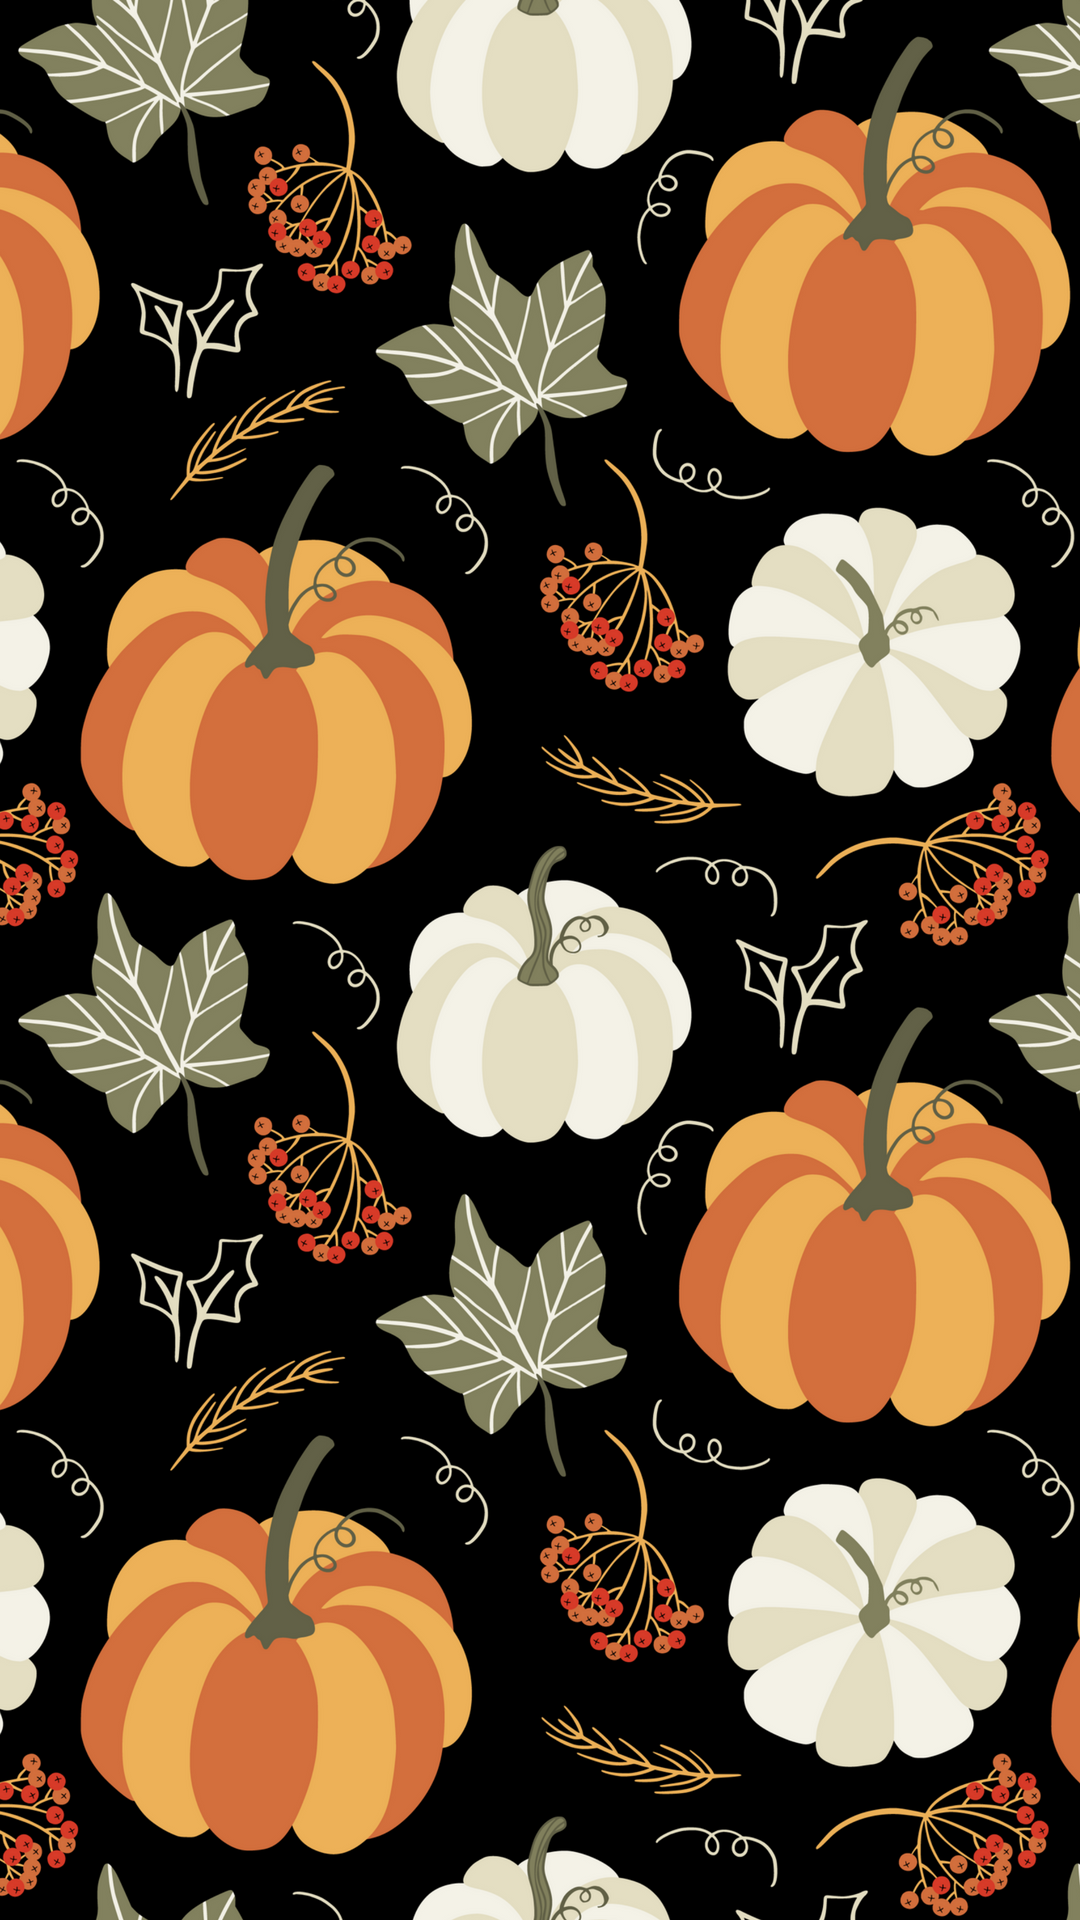 1080x1920 Pin by 斉藤 あや on pattern likes | Iphone wallpaper fall ...